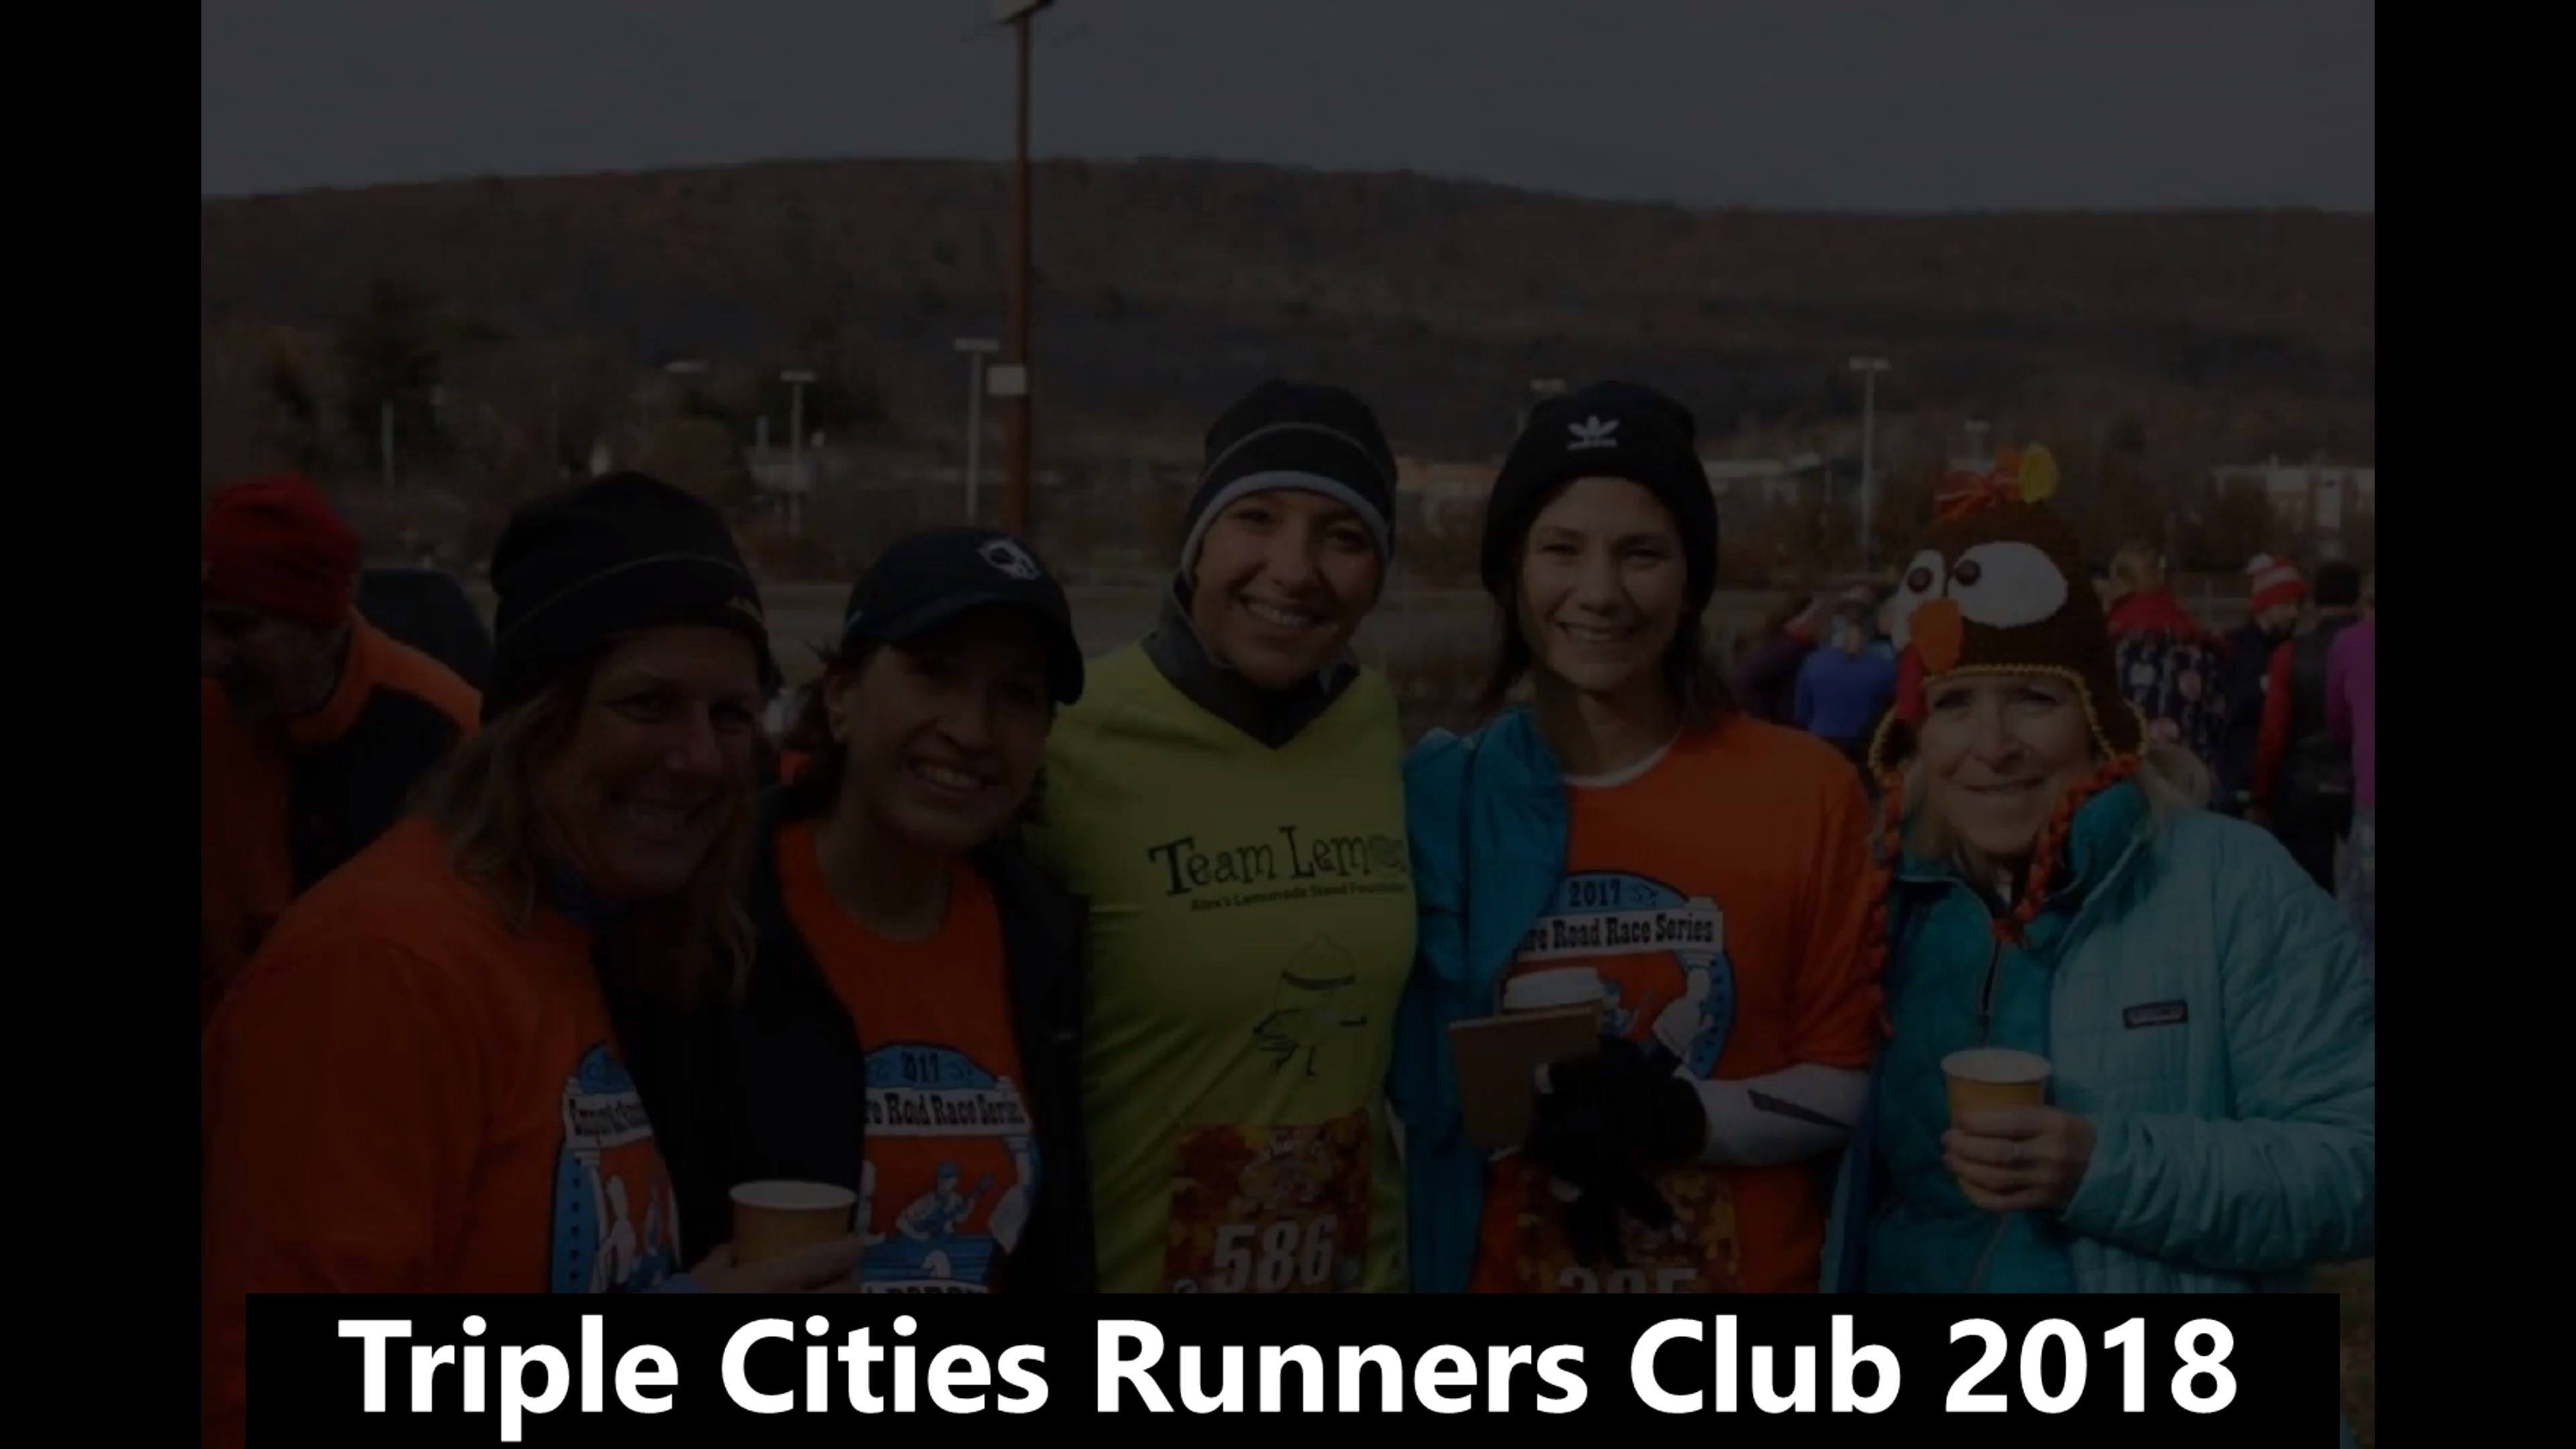 Triple Cities Runners Club 2018